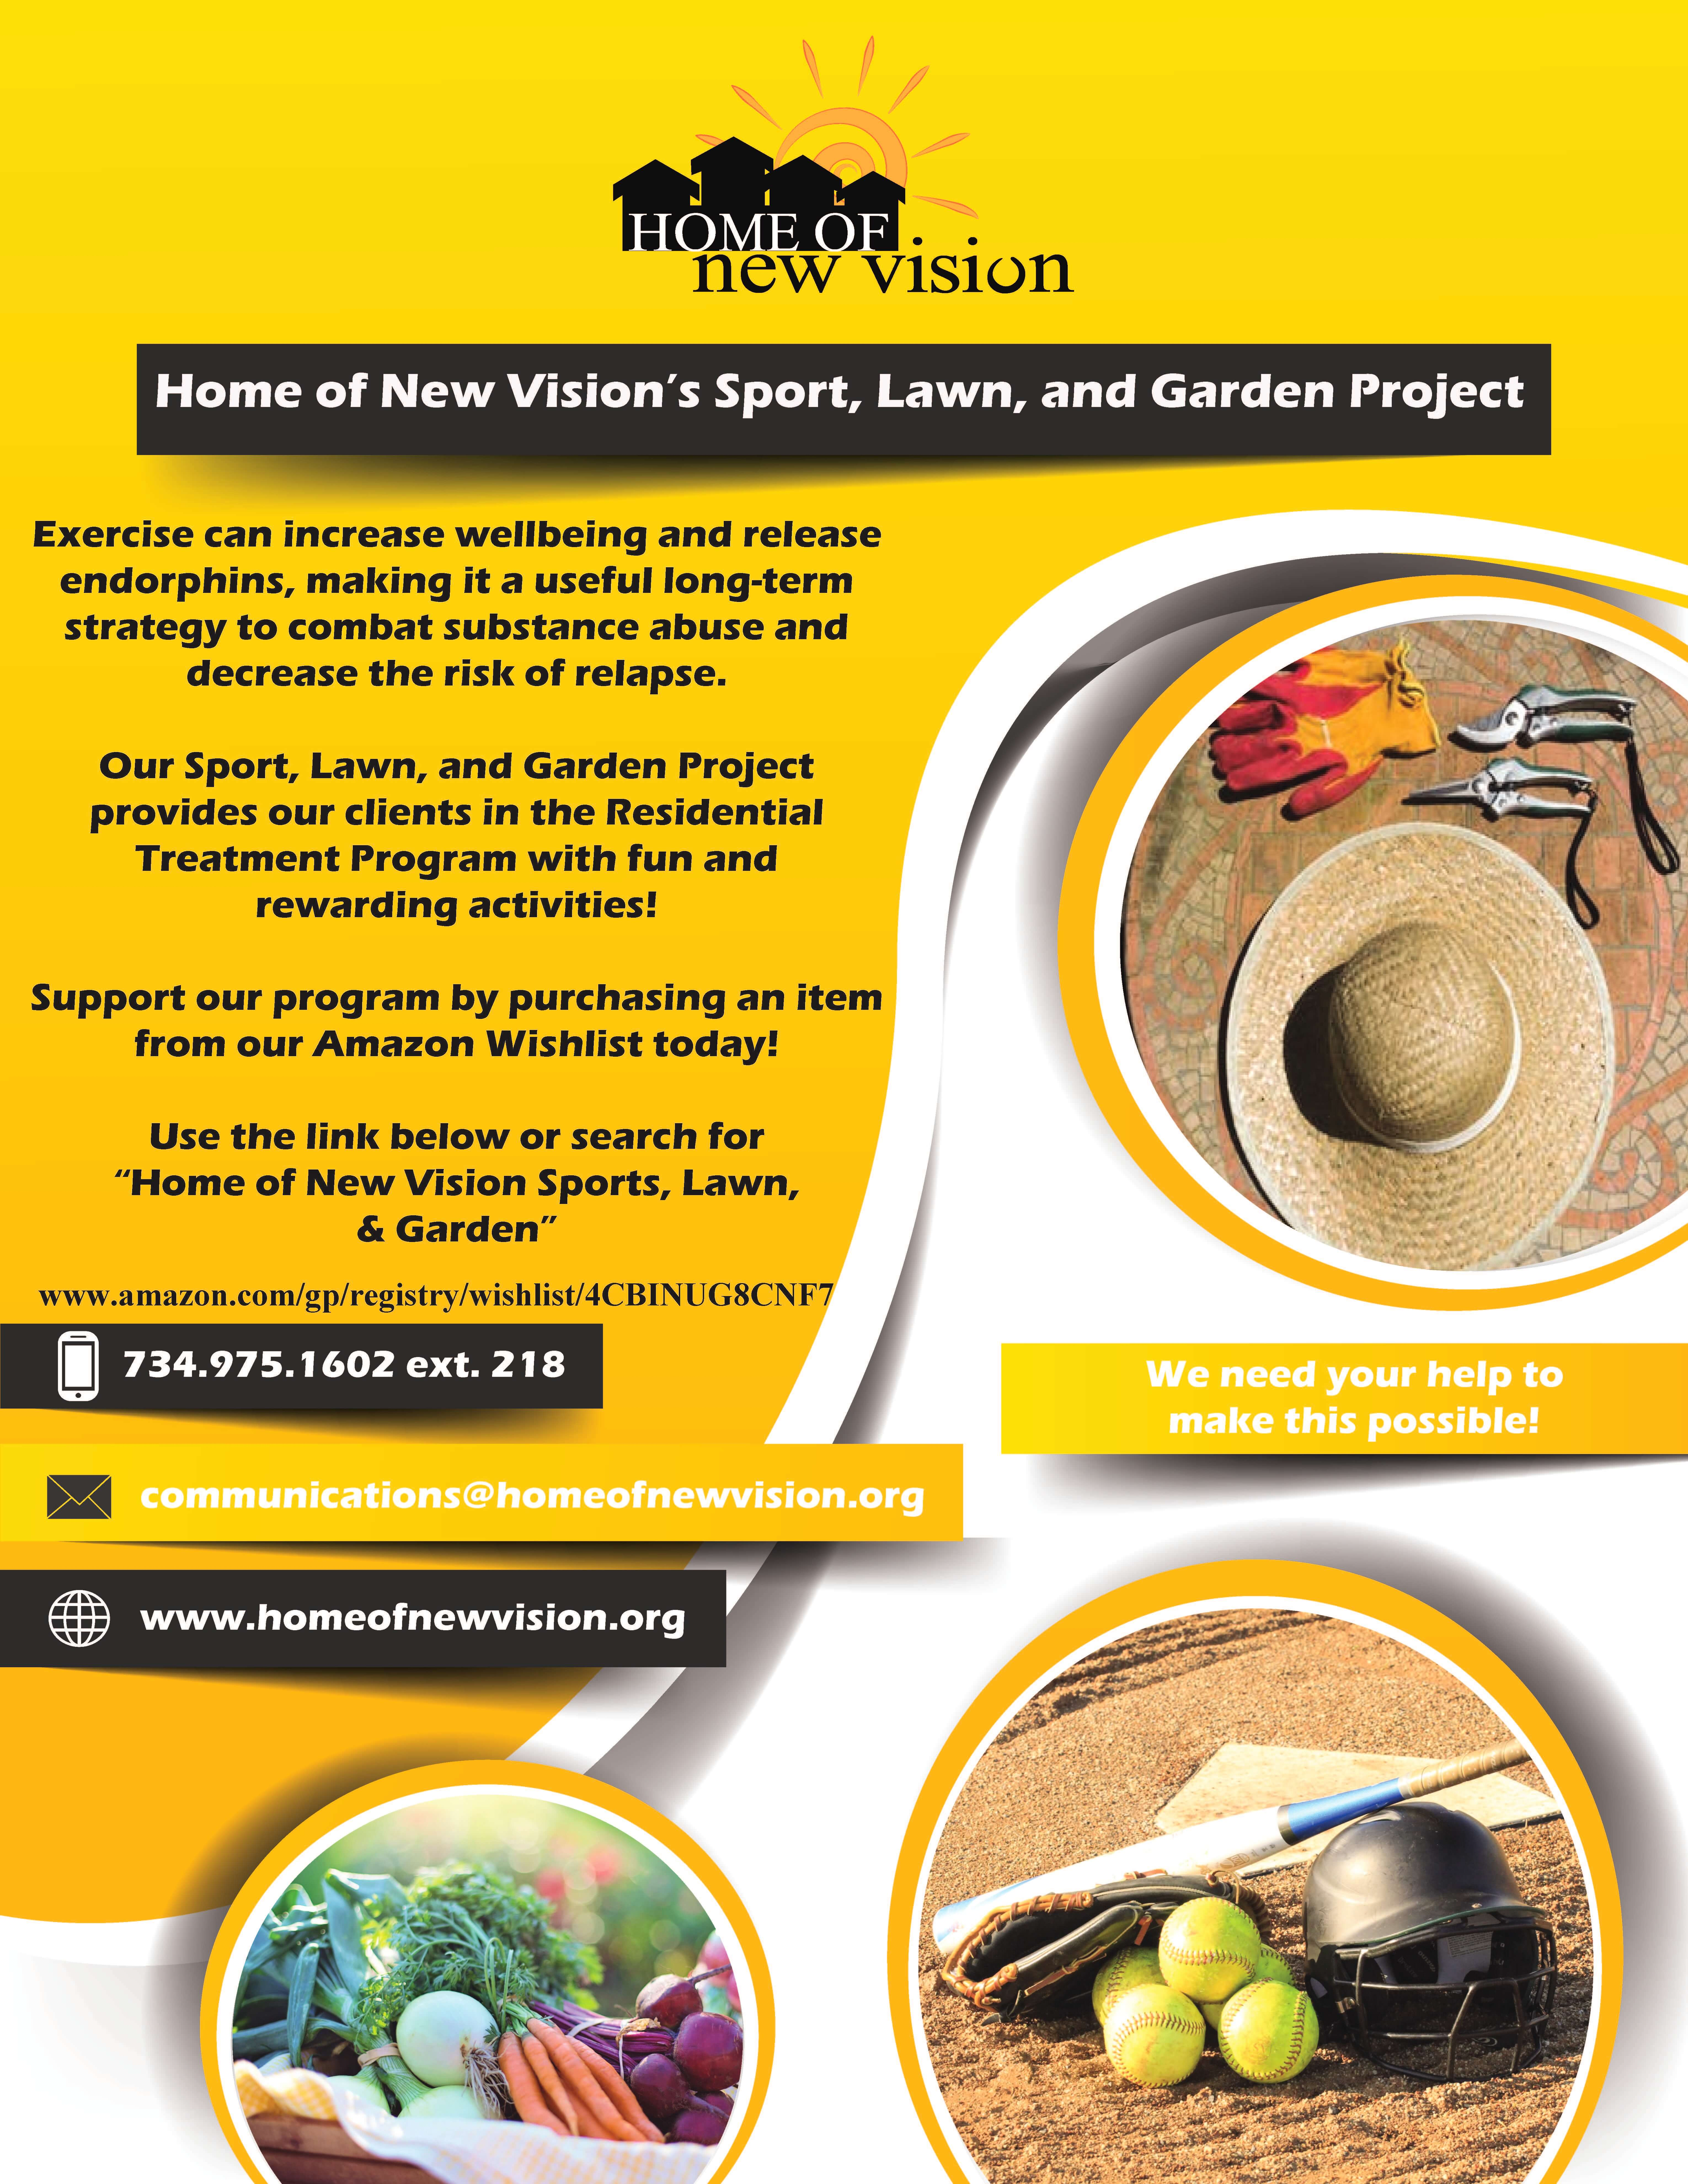 Sport, Lawn, and Garden Project | Home of New Vision